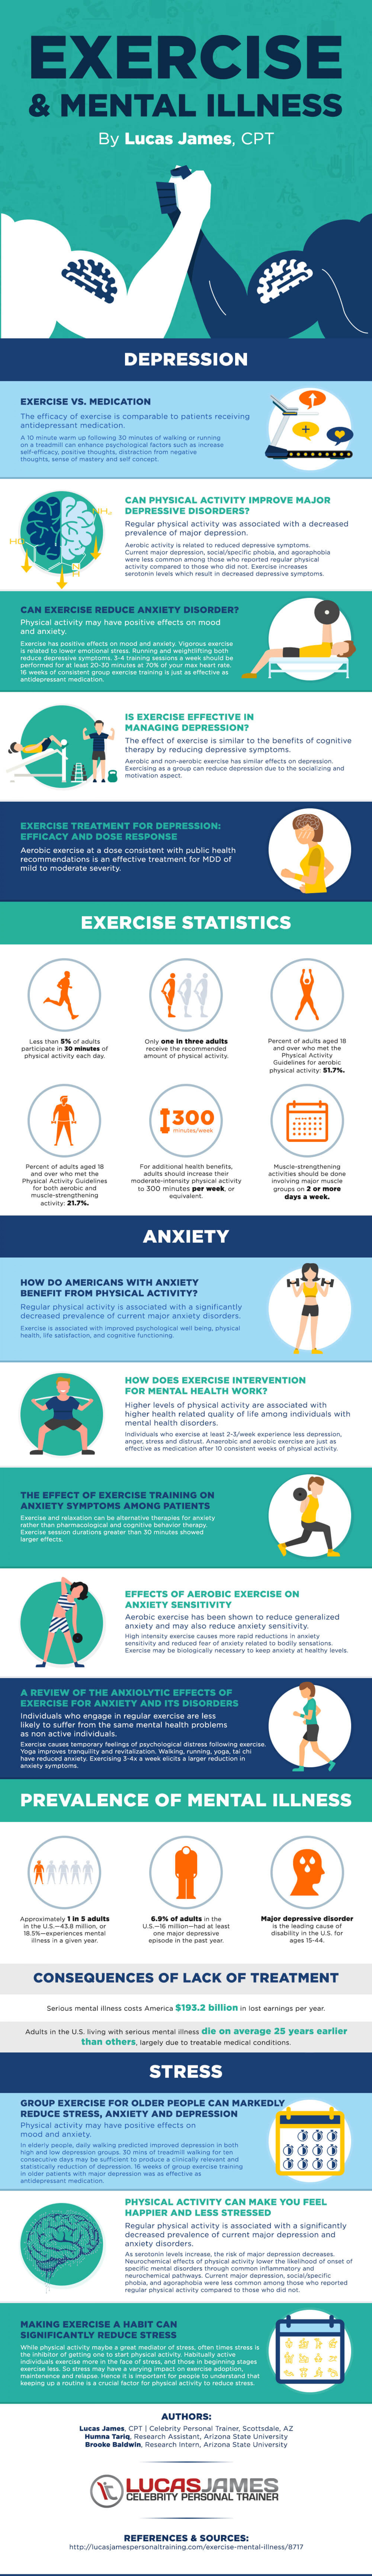 Exercise & Mental Illness Infographic